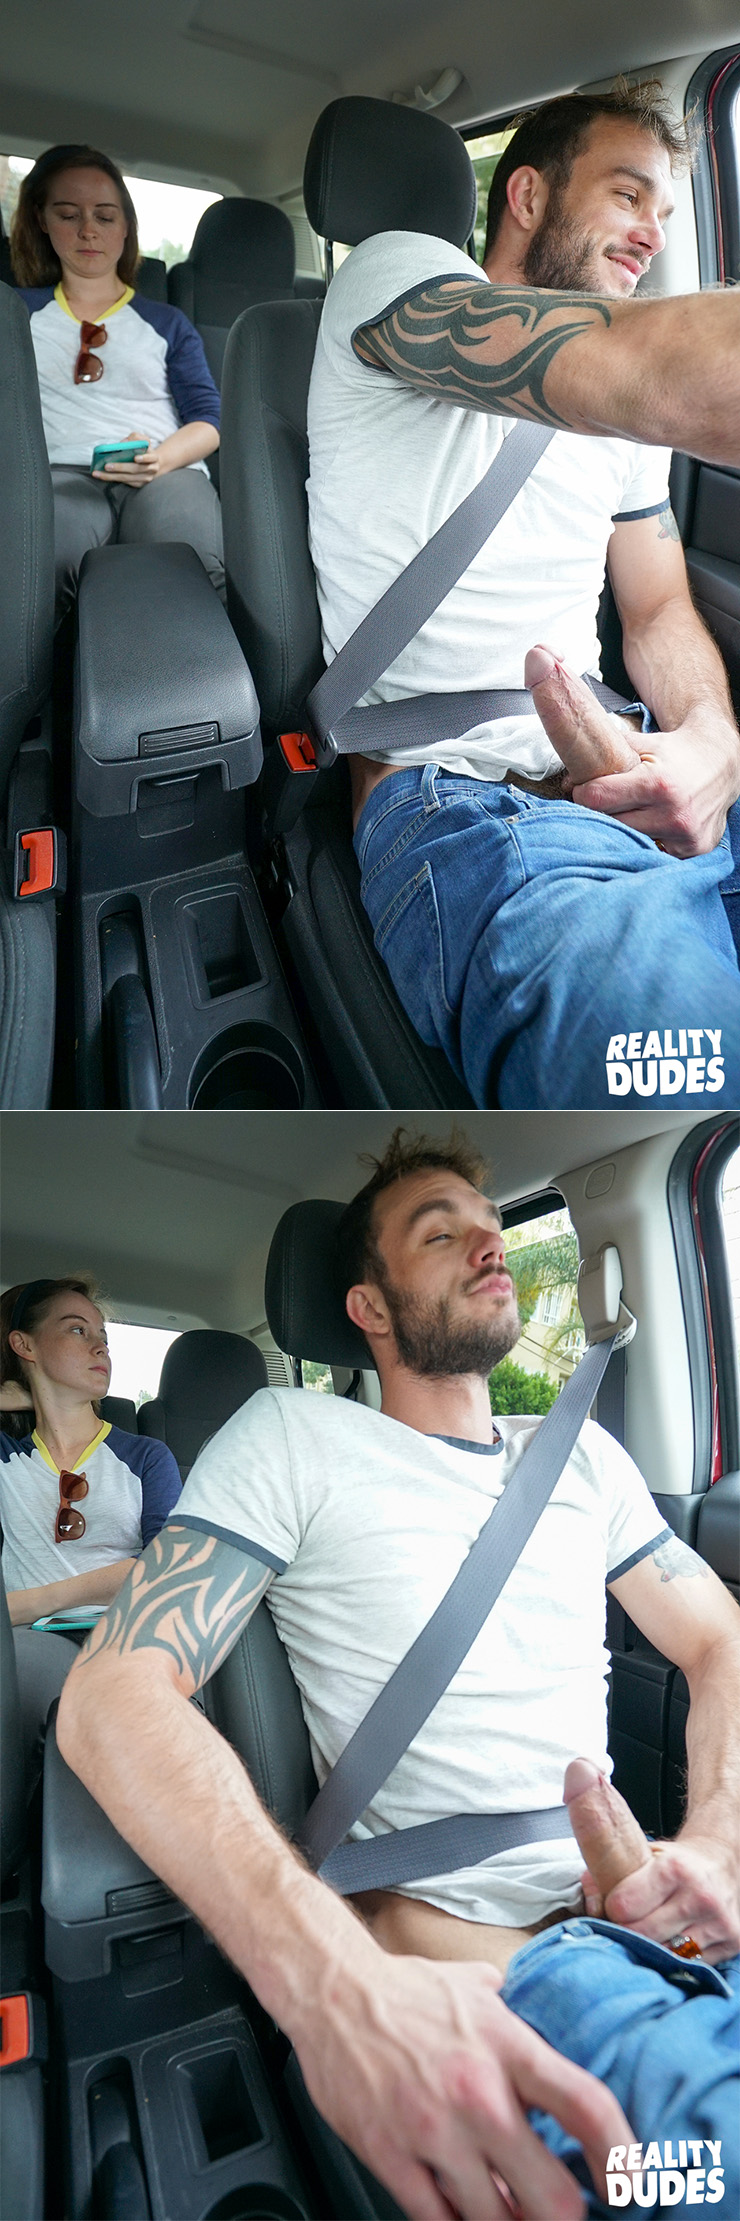 Reality Dudes Dudes In Public Dirty Driver Cliff Jensen Big Cock Solo Masturbation Scene 1